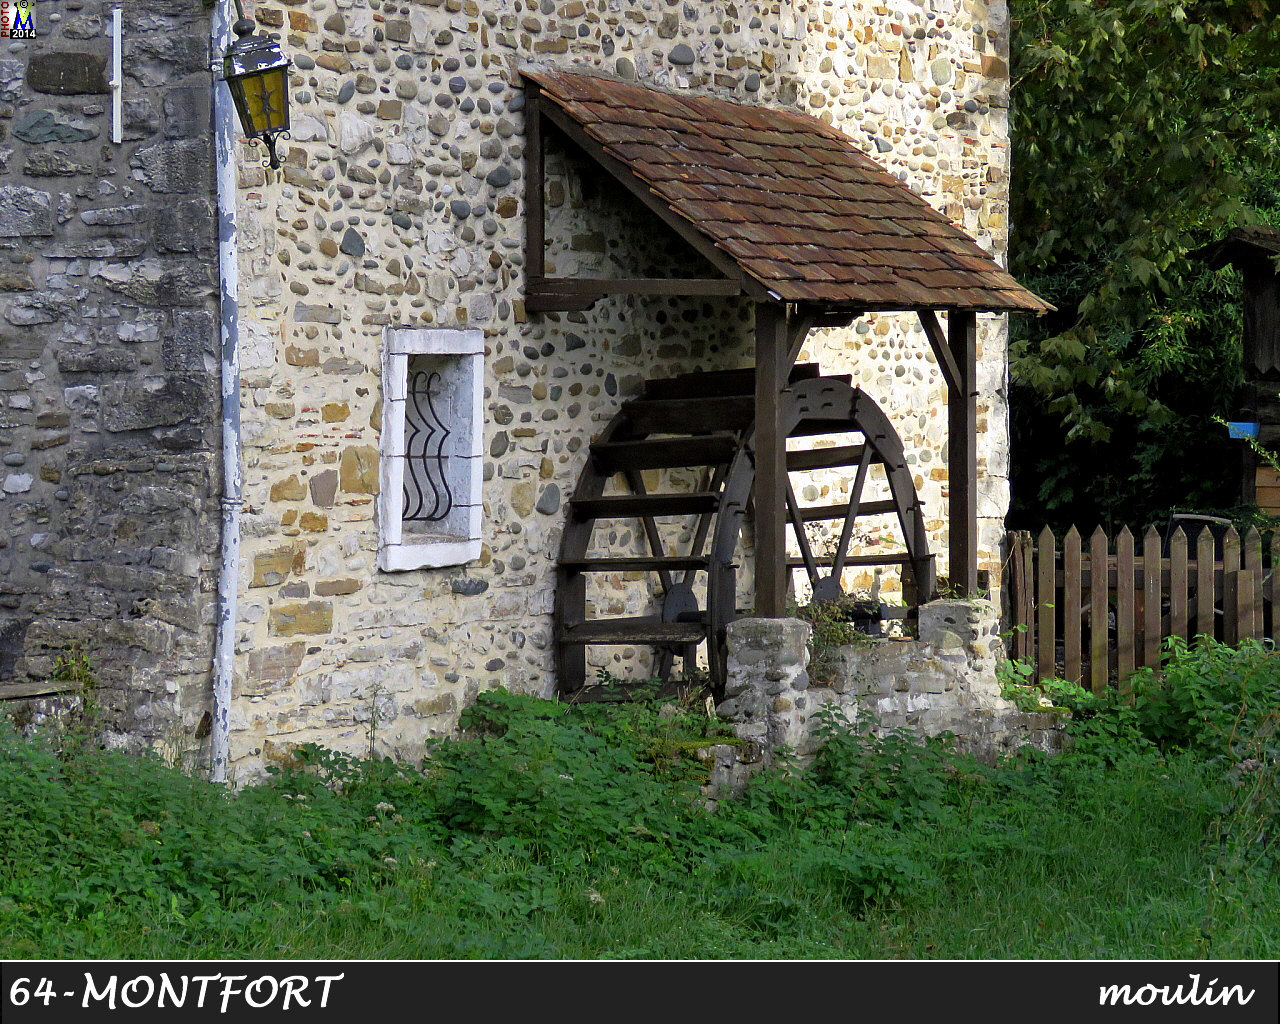 64MONTFORT_moulin_100.jpg